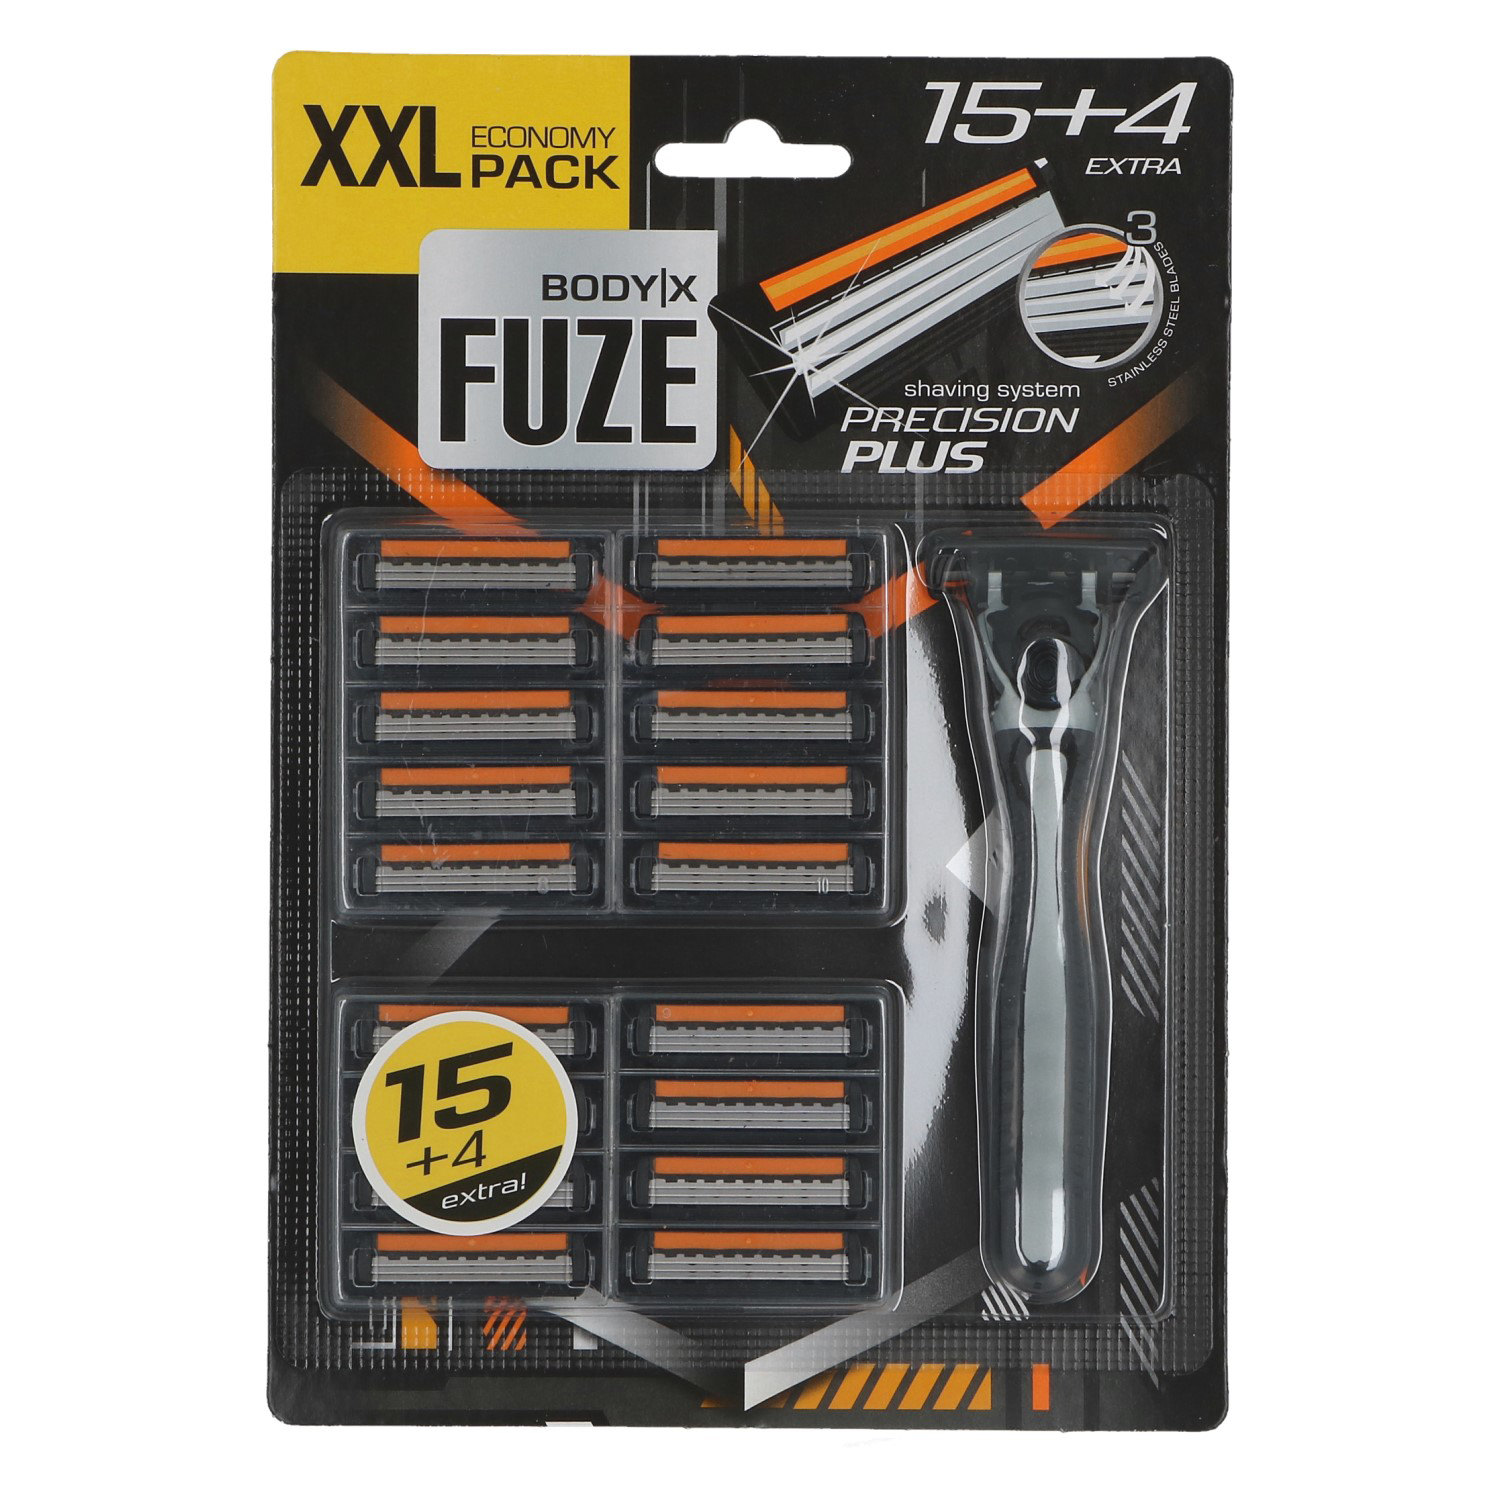 00645 - Razor for men 16+5 tripple blades